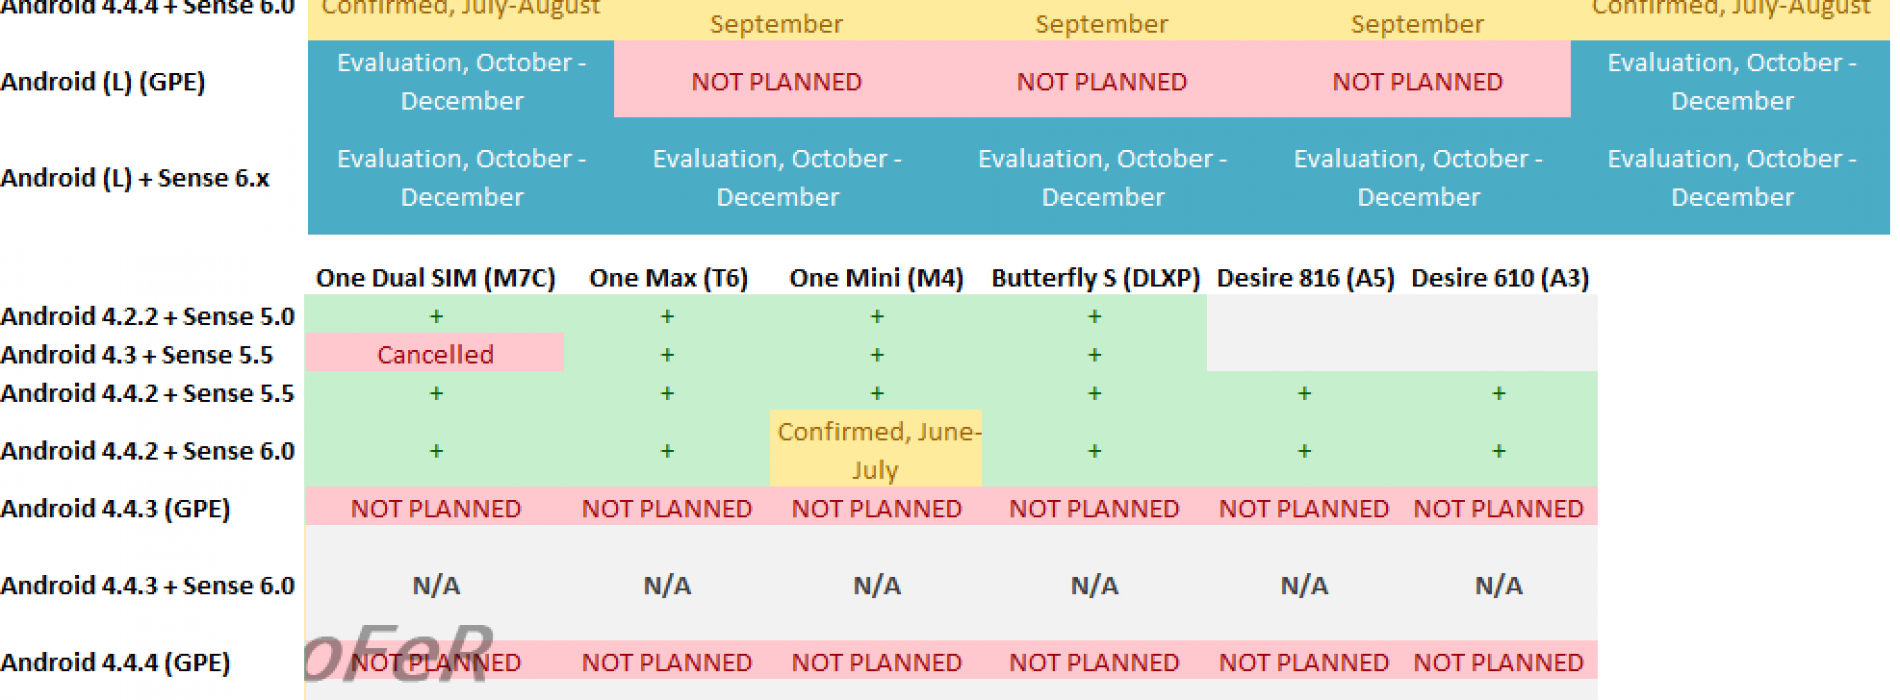 HTC update roadmap for Android 4.4.4 leaked